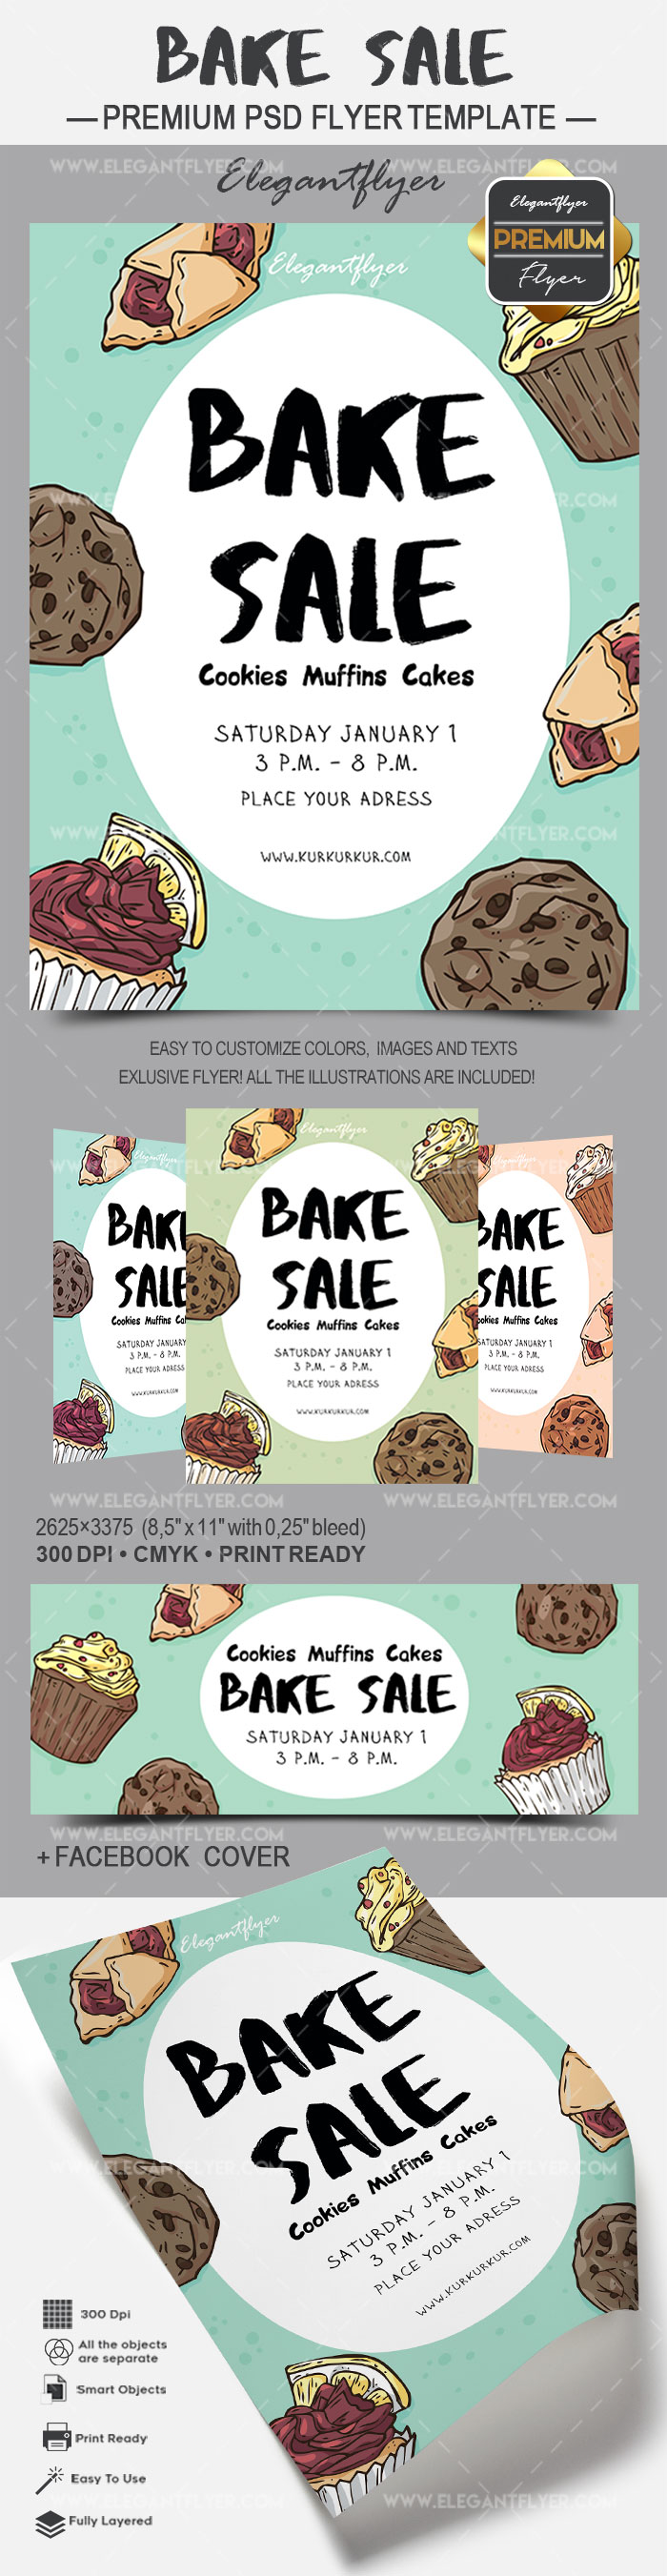 Flyer for Bake Sale Cookies Muffins Cakes